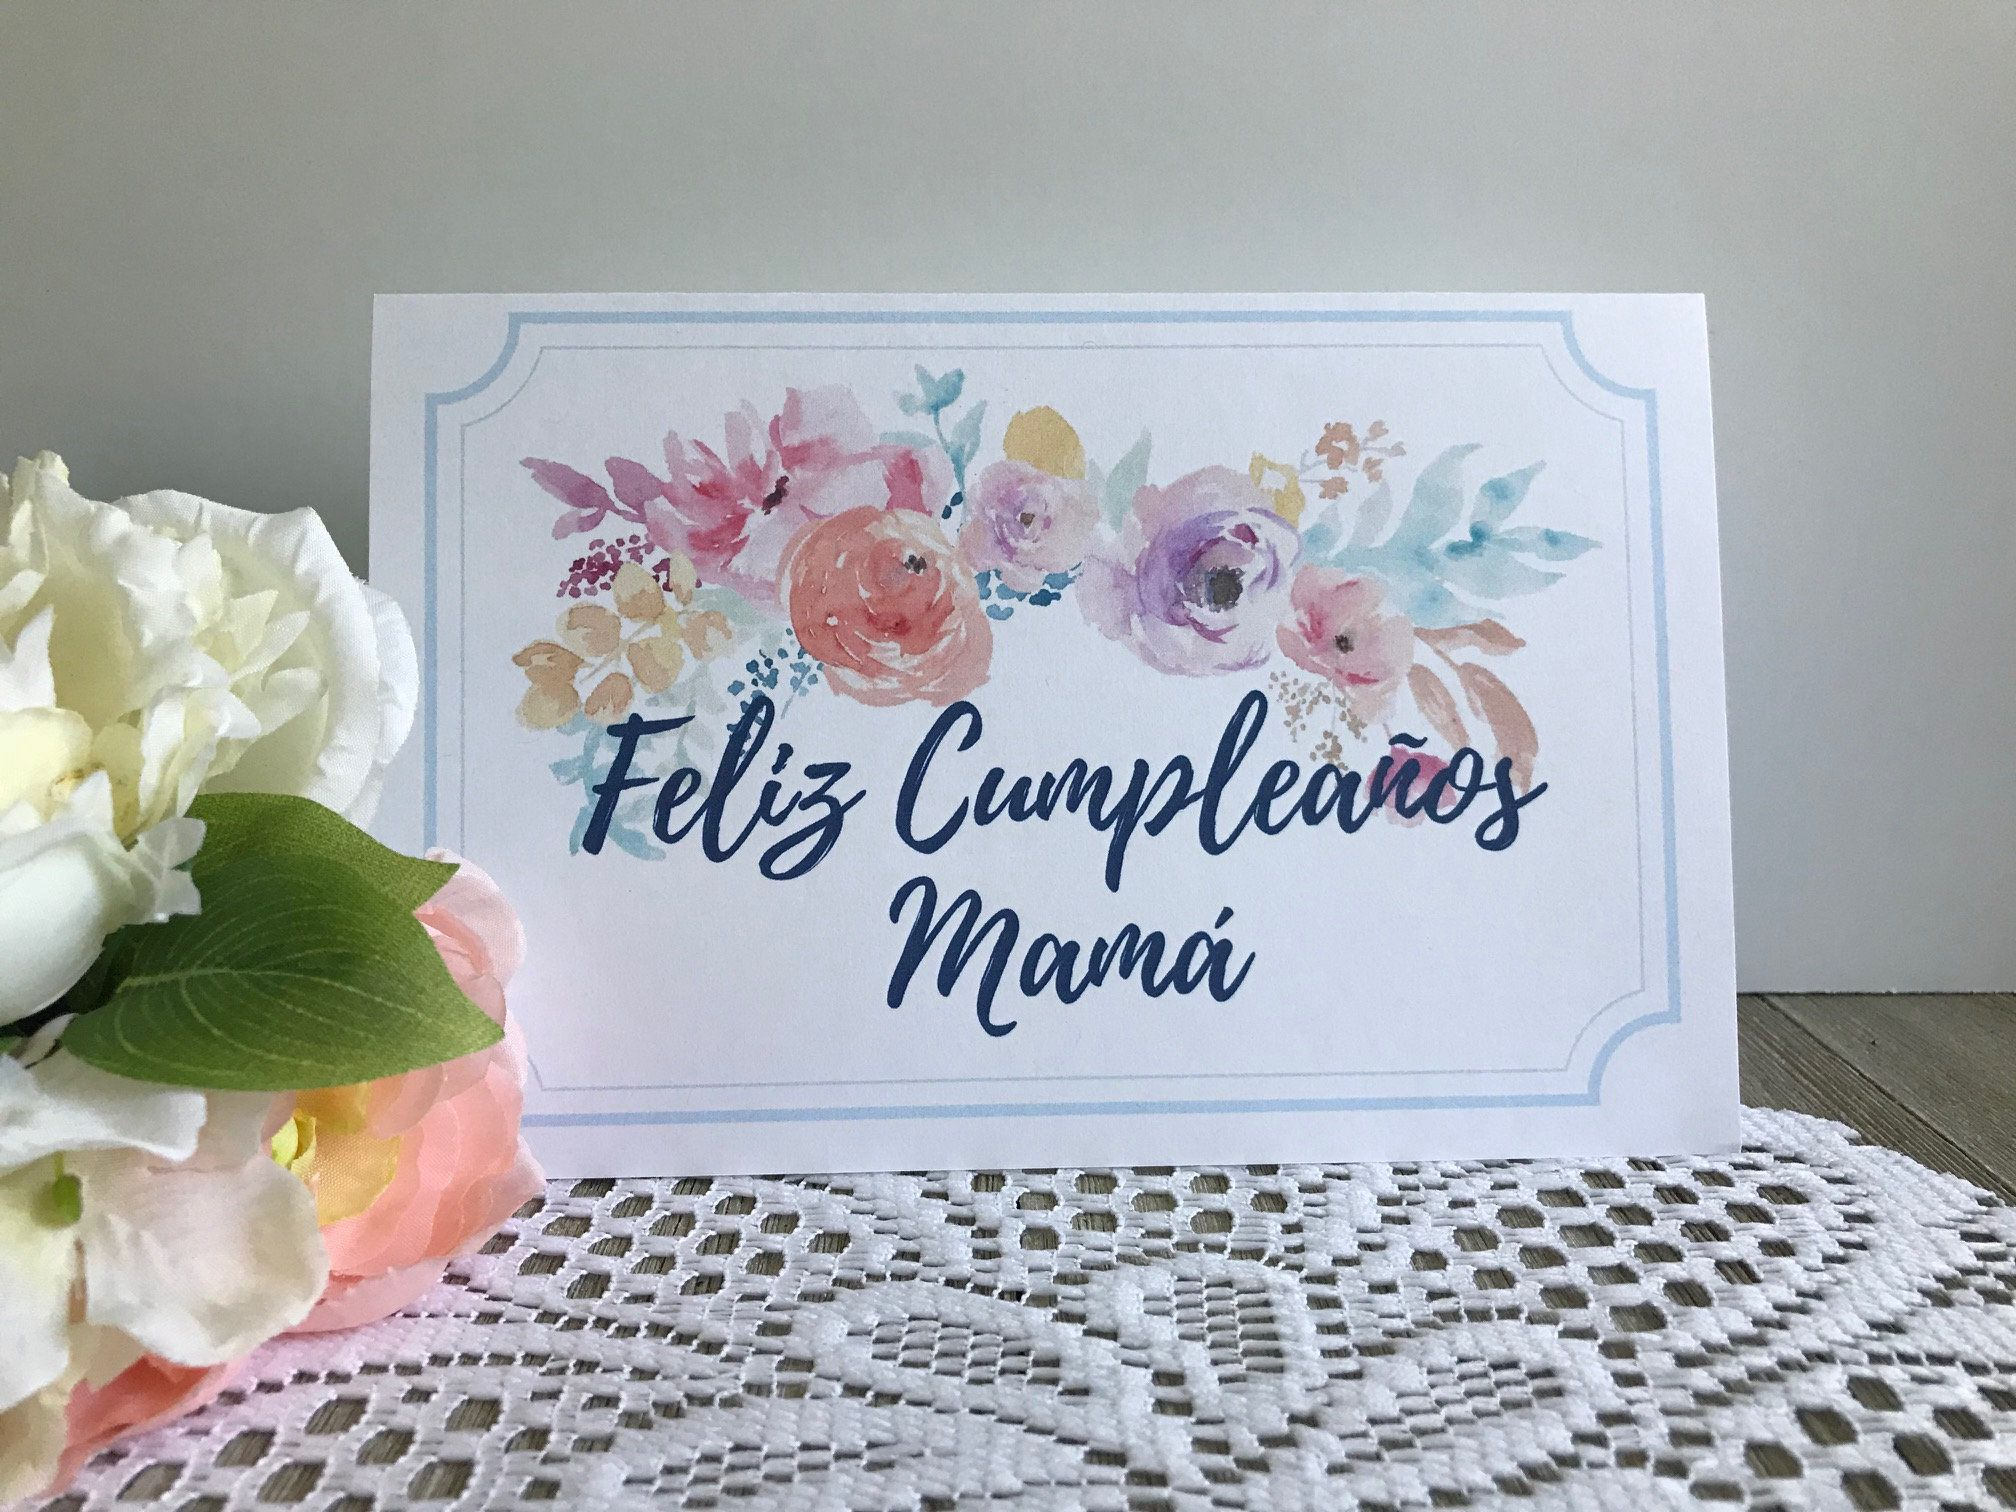 image about Spanish Birthday Cards Printable titled Printable Birthday Card for Mother within just Spanish - Feliz